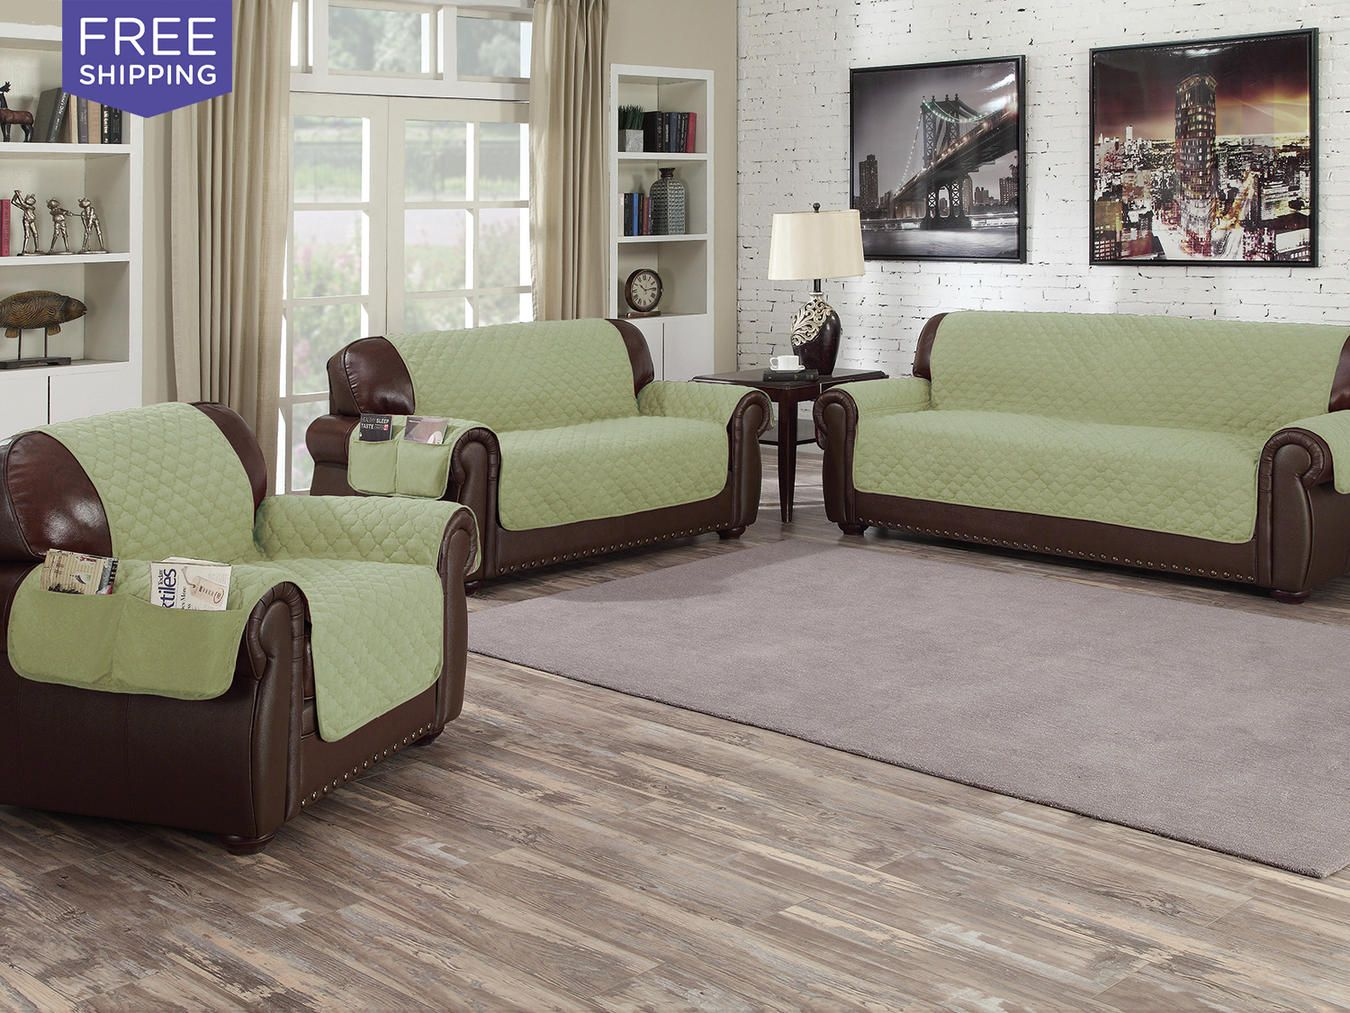 Durable Furniture Cover Available In Three Sizes To Fit A